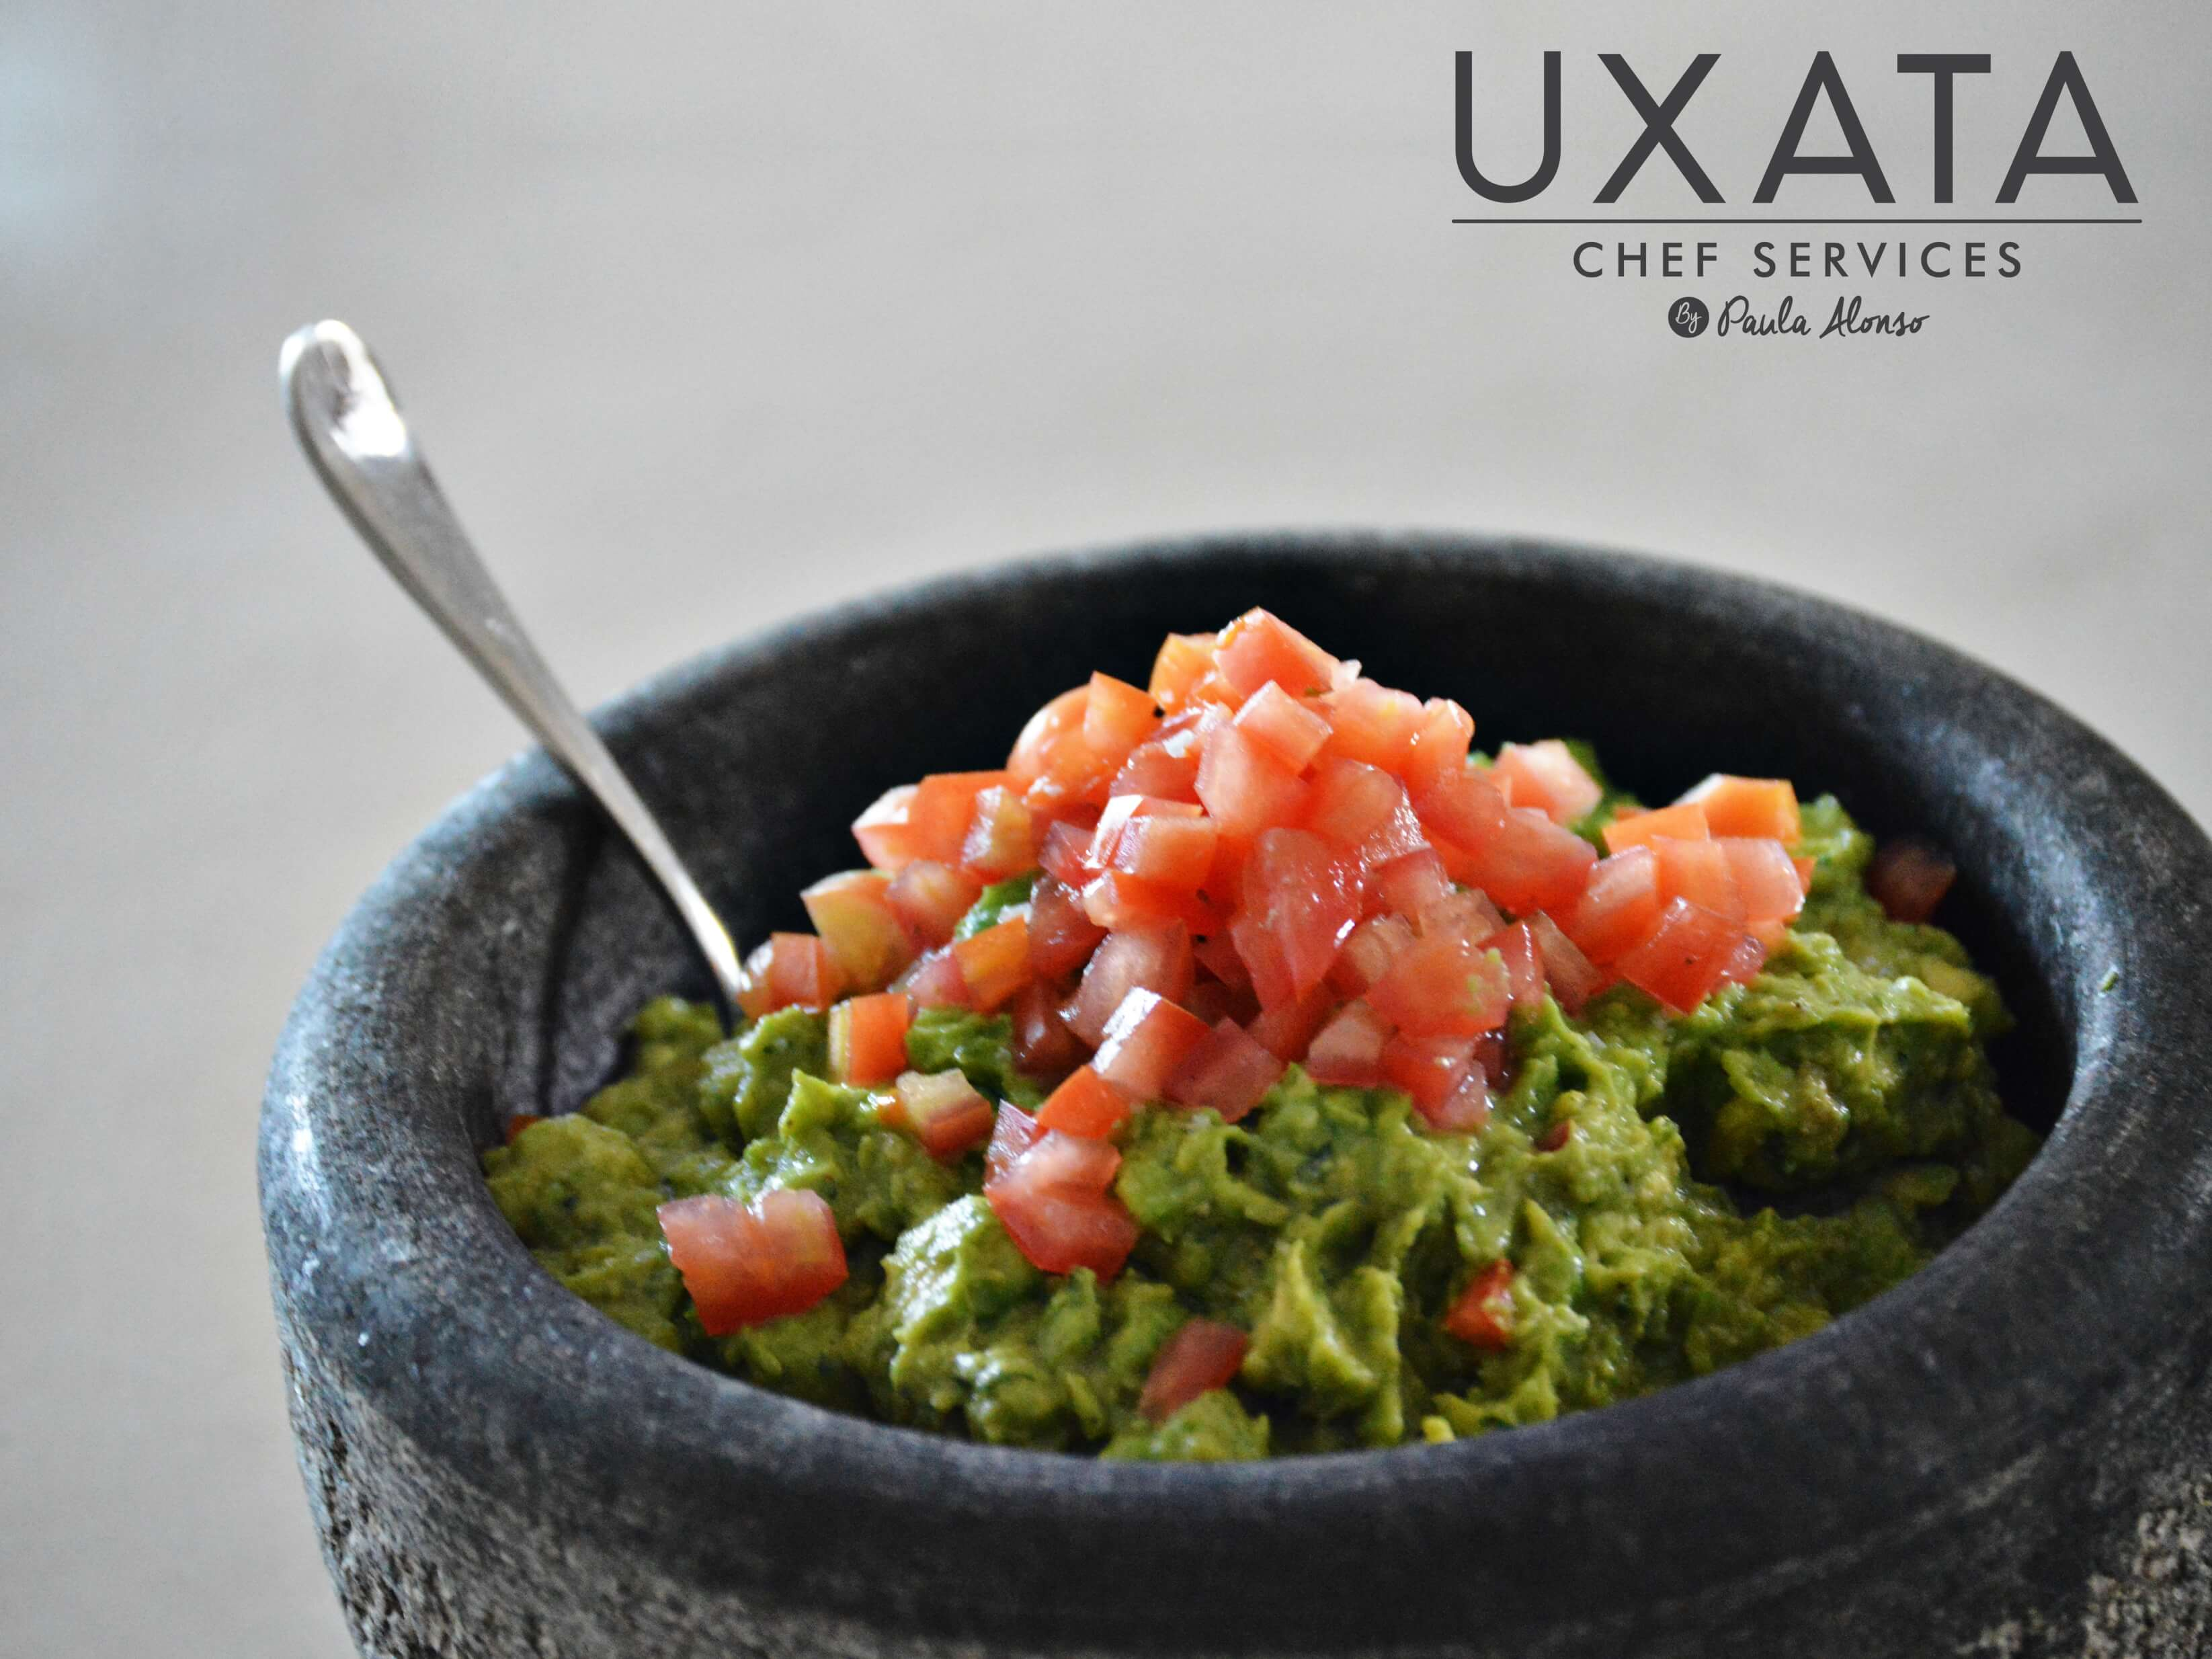 Molcajete with traditional guacamole, by UXATA Private Chef Services, Riviera Maya.